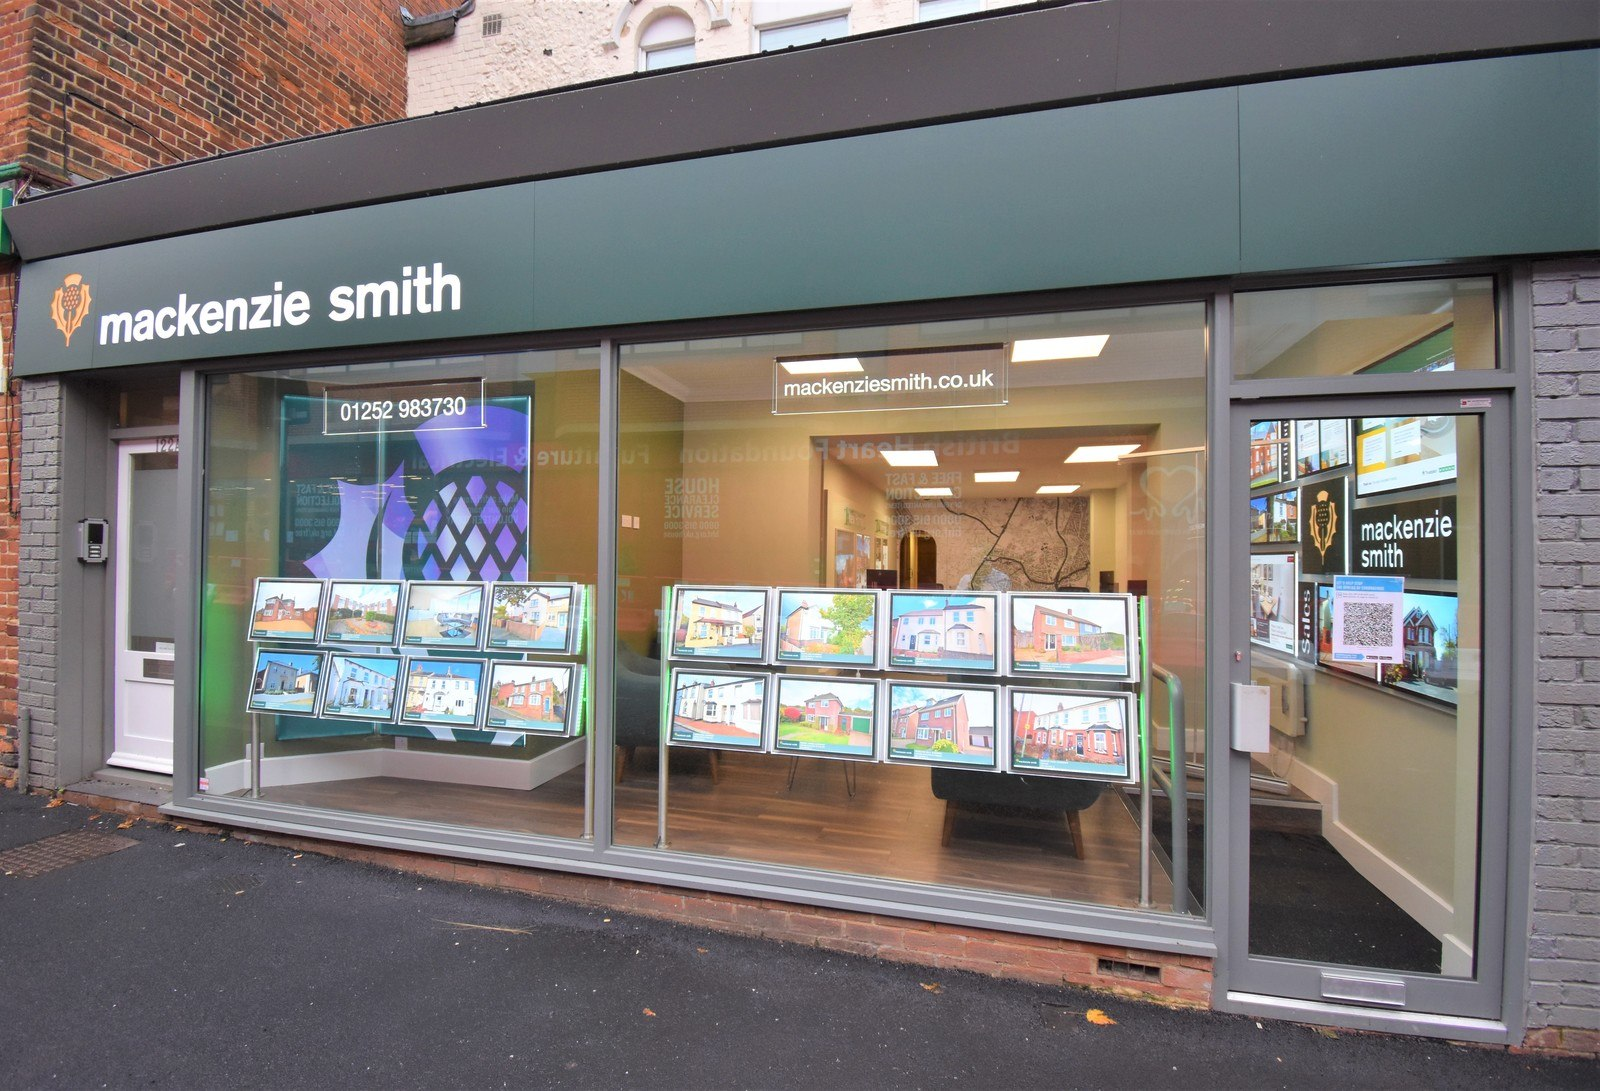 mackenzie smith estate agents in aldershot